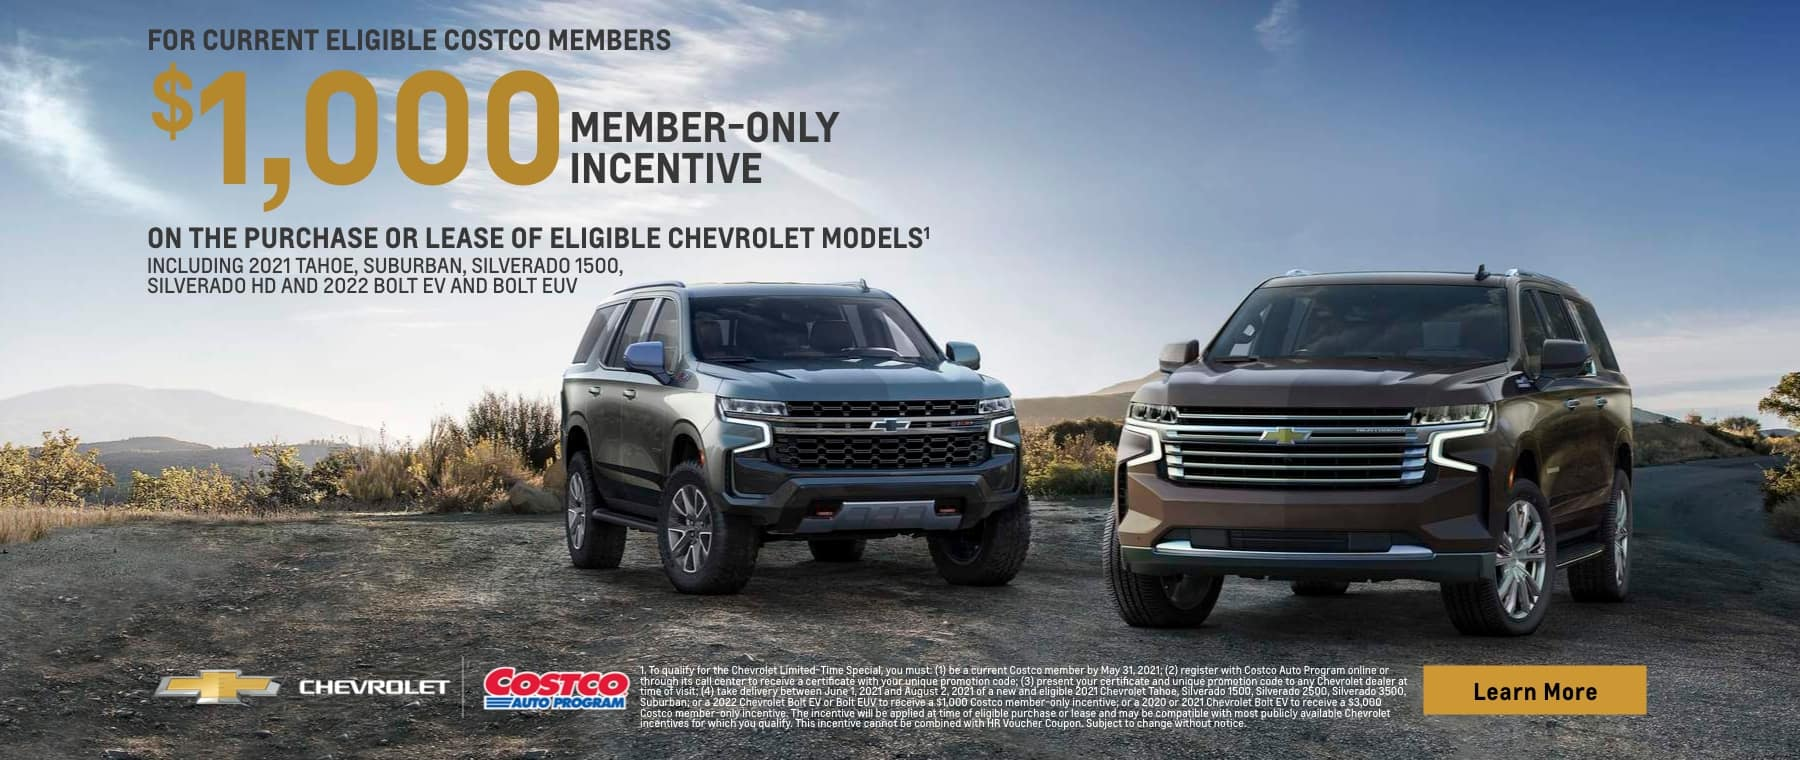 Costco Member Incentive for Select Vehicles